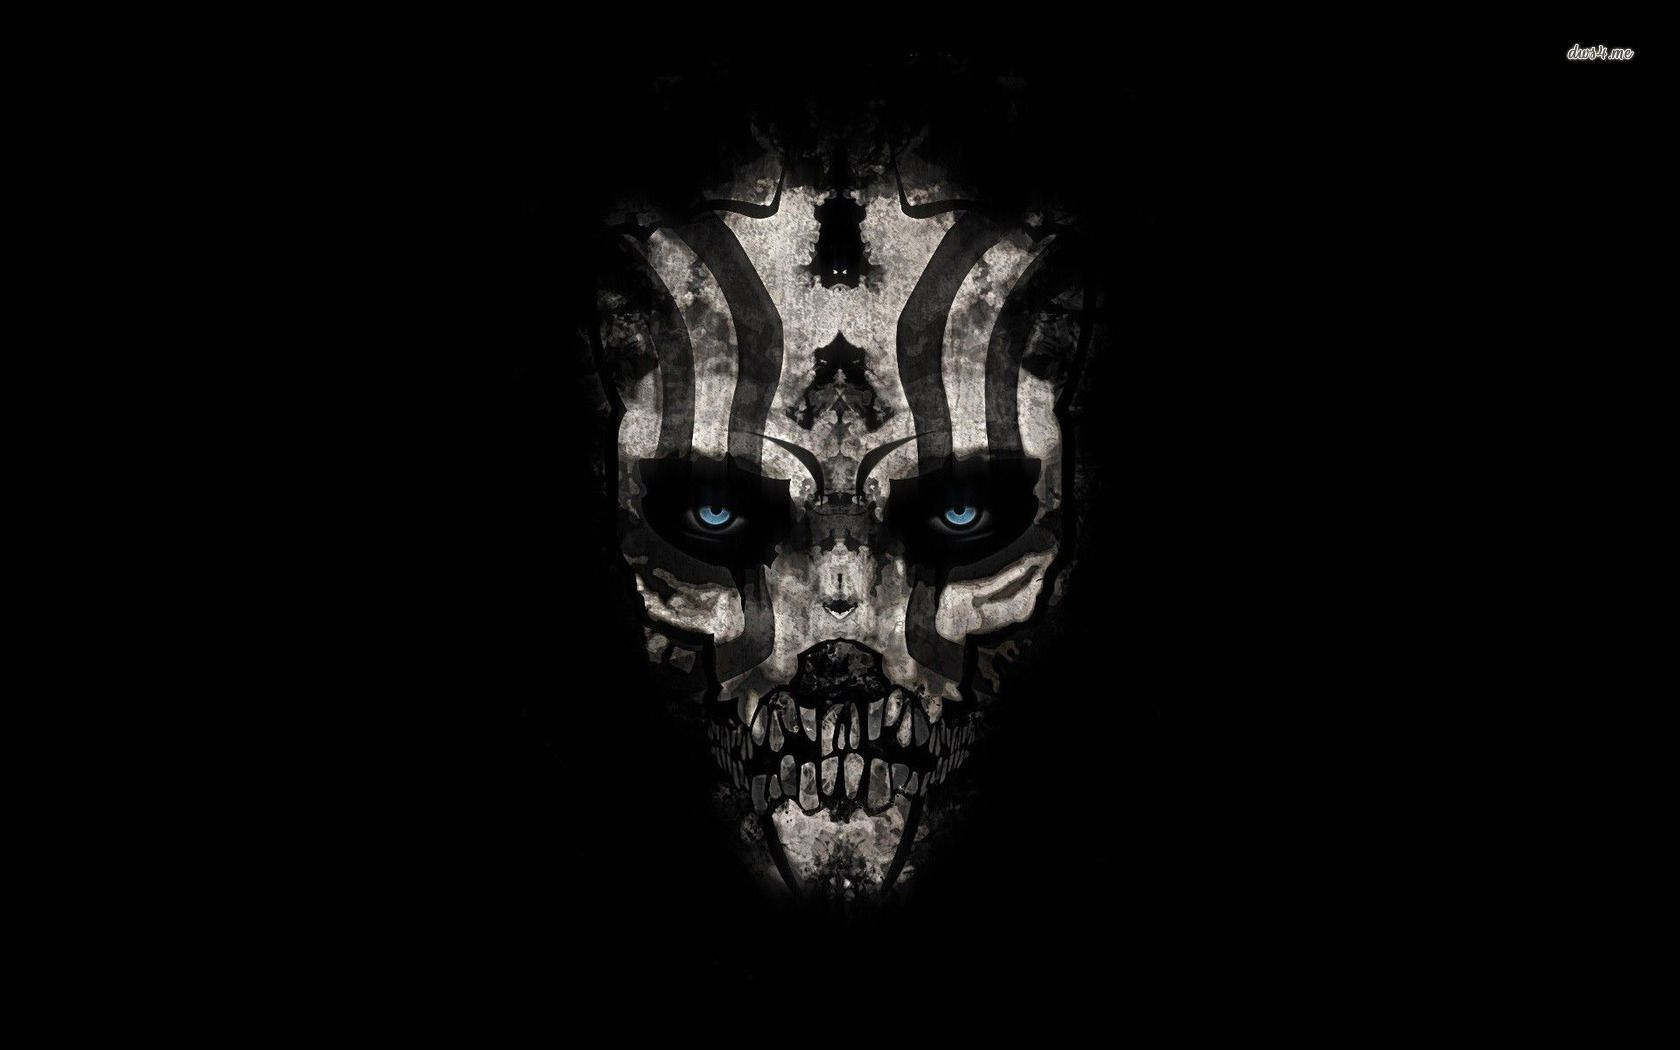 Mask Of The Wraith Prince Of Persia Hd Wallpaper Black Skulls Wallpaper Prince Of Persia Skull Wallpaper